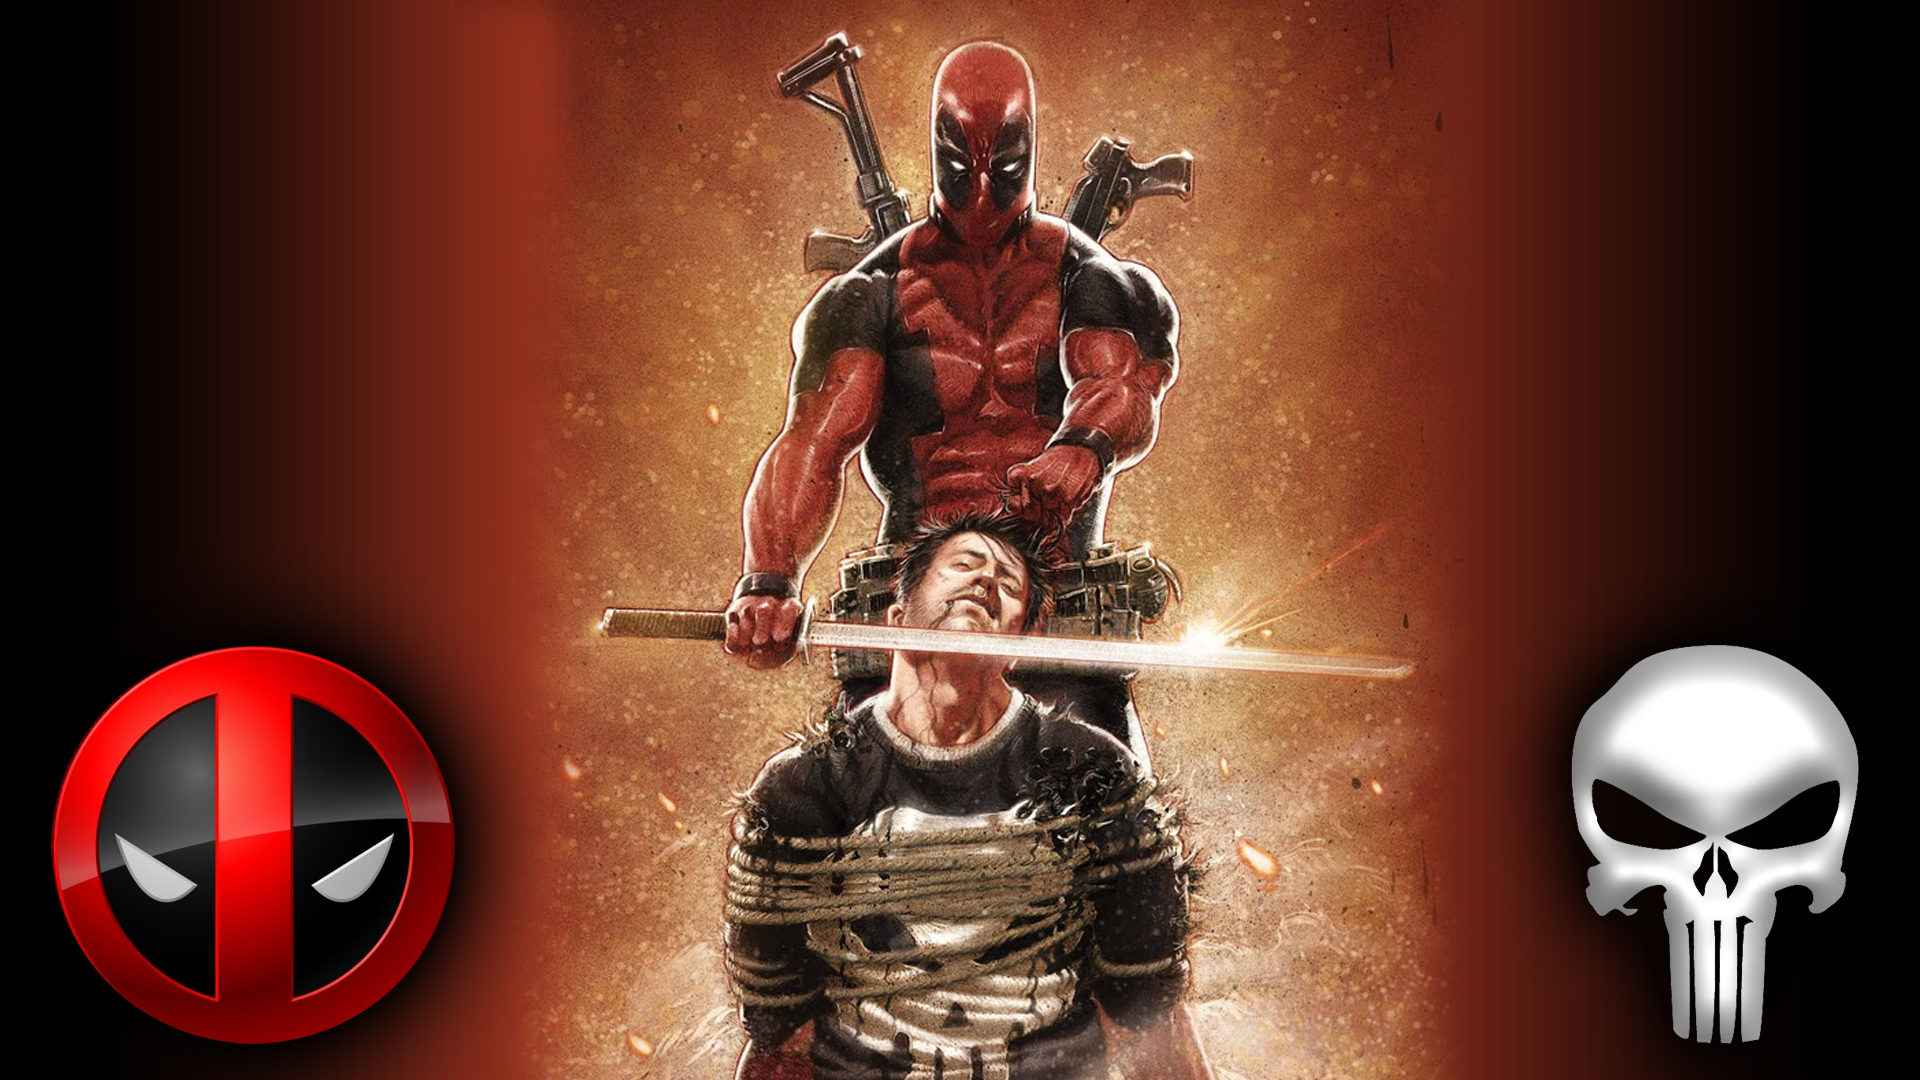 Deadpool executing The Punisher